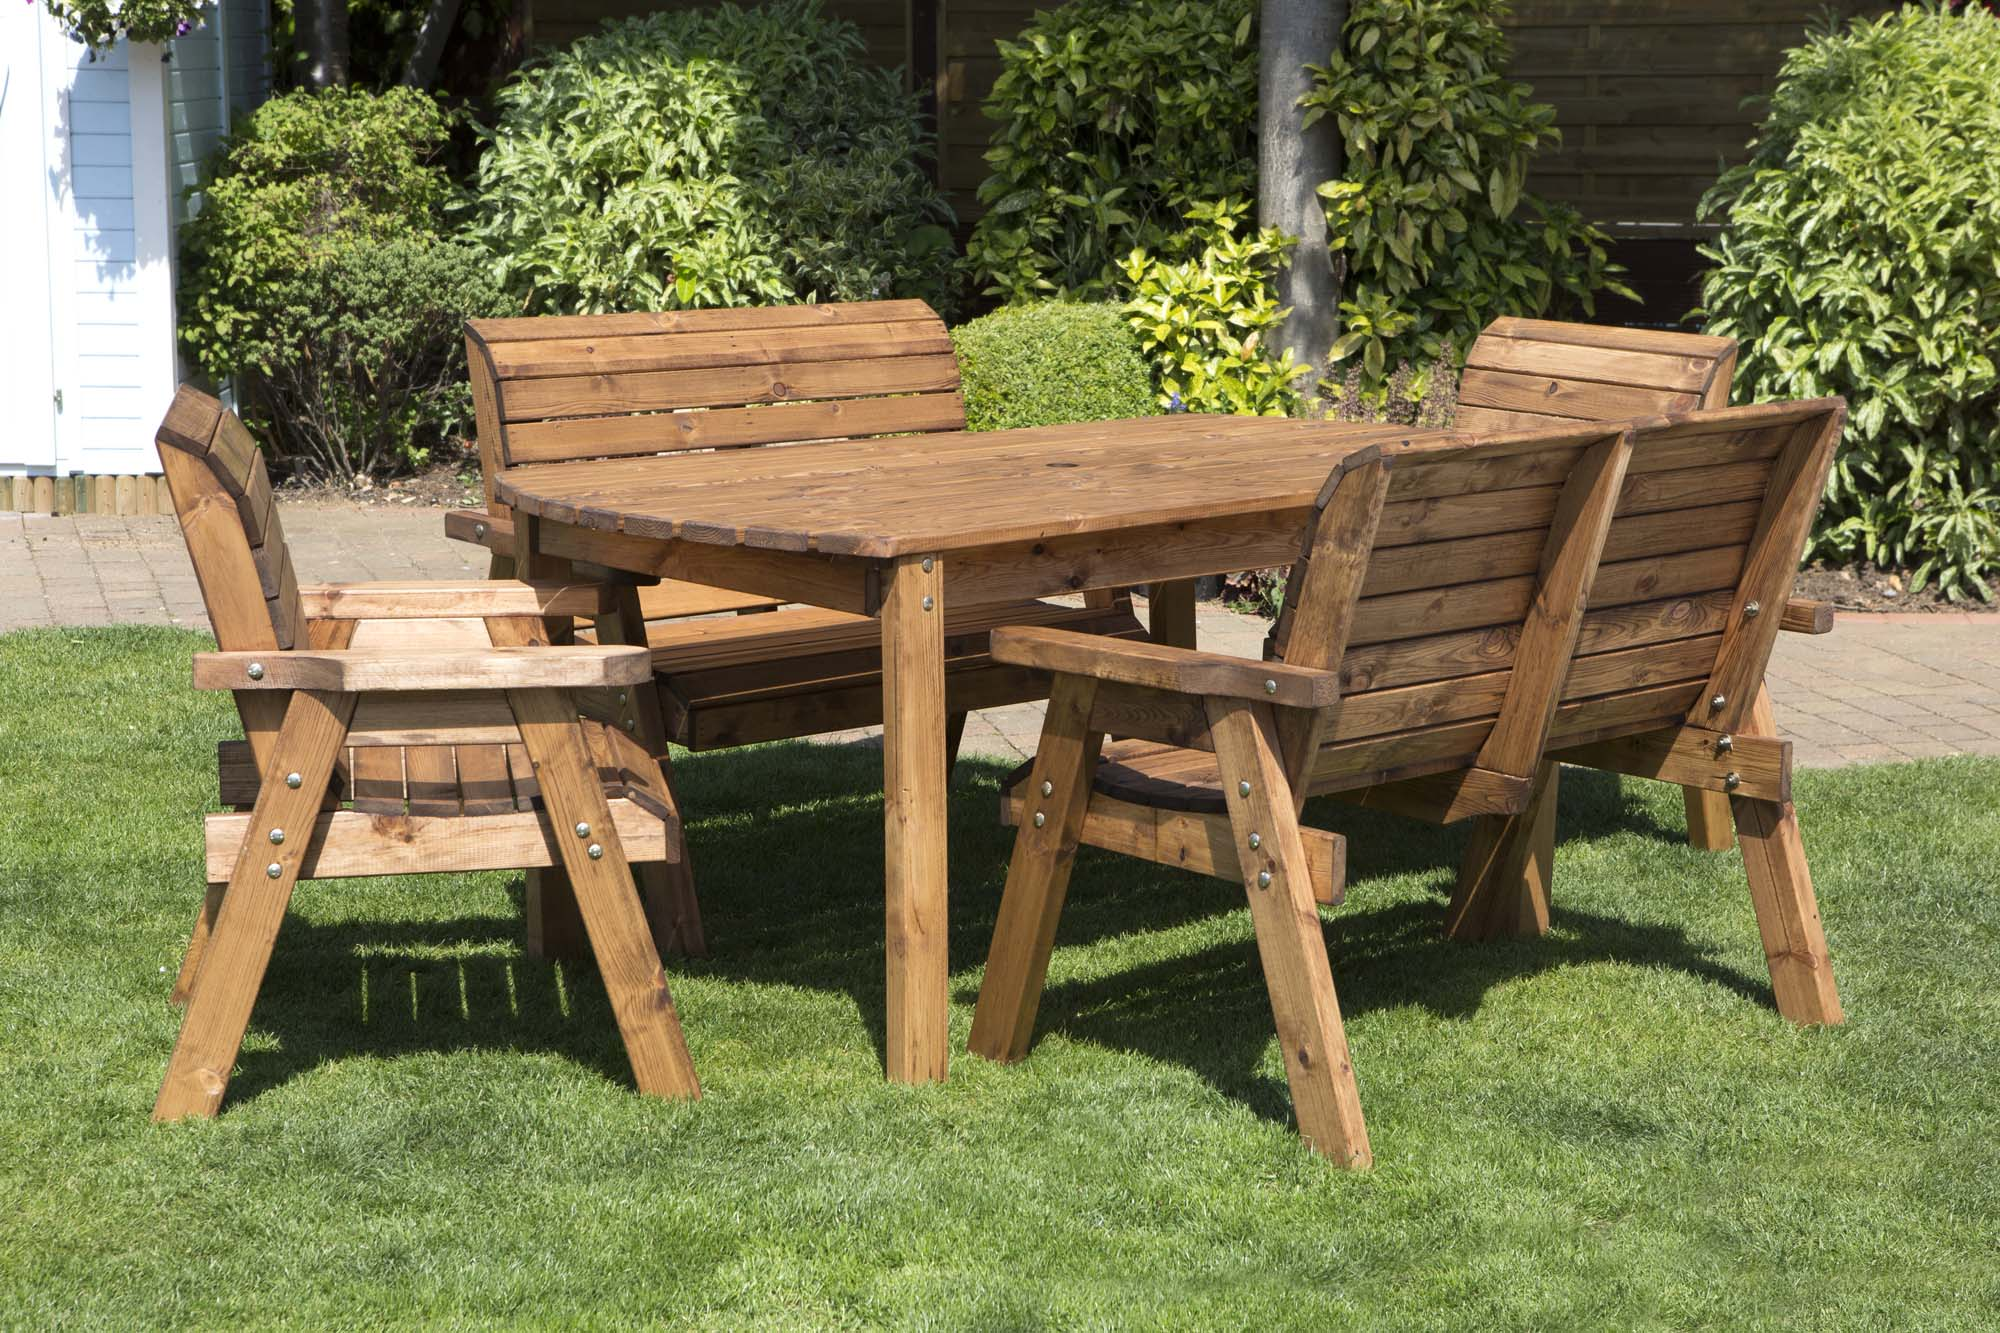 Chunky Rustic Wooden Garden Furniture